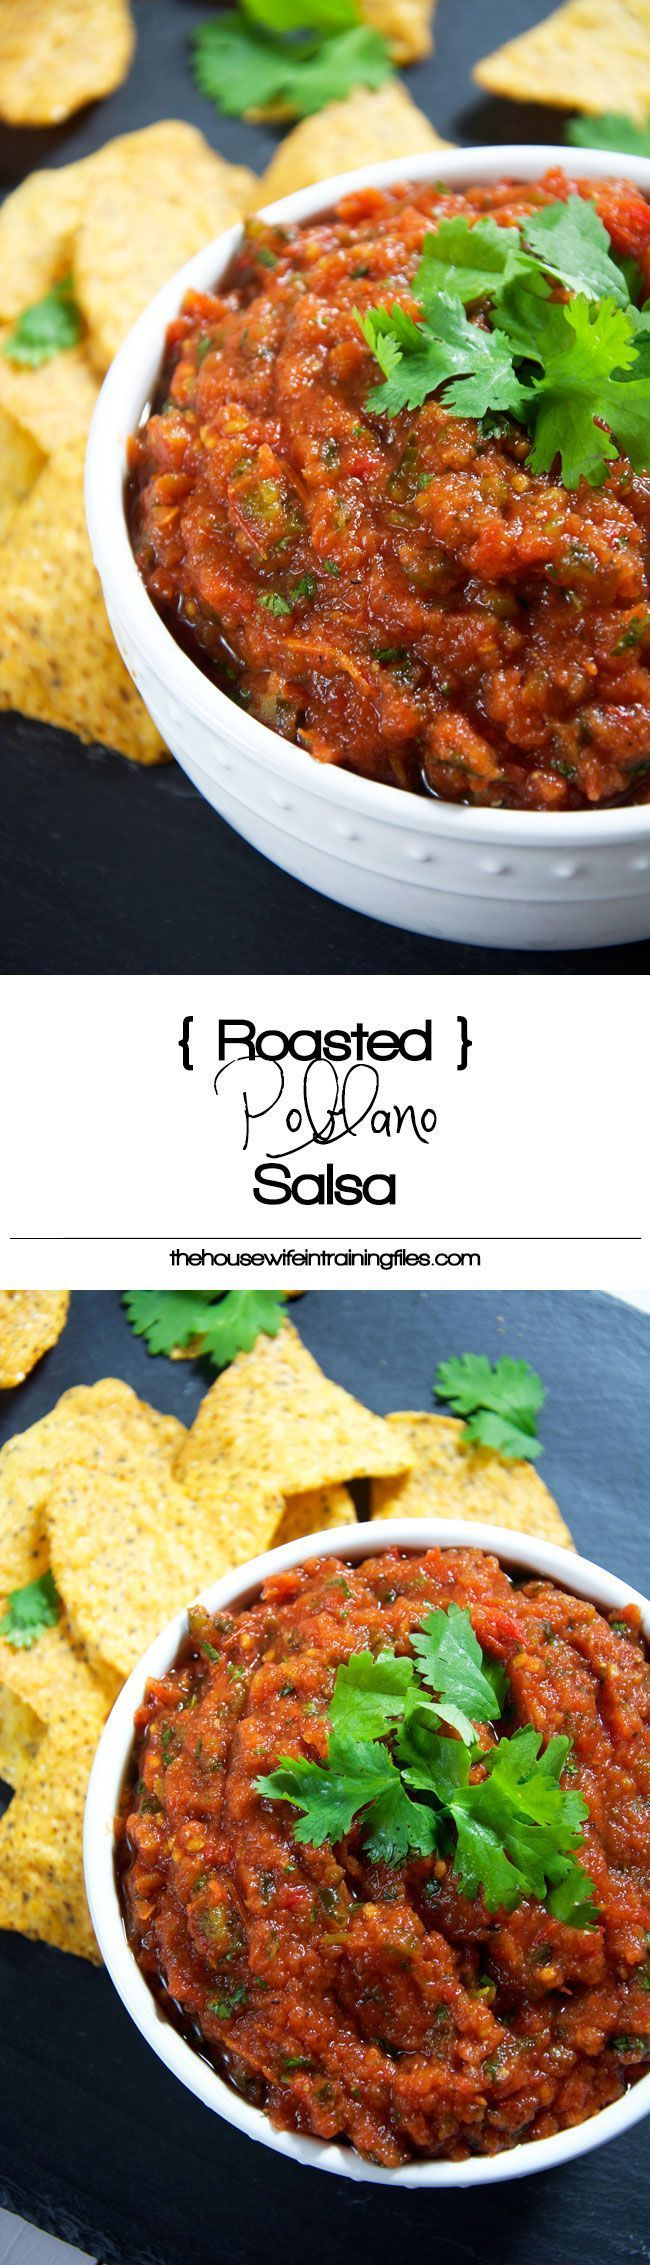 Roasted poblanos salsa Recipe | Vegans, Sweets, Mexicans, Hispanic, Homemade, Fresh, Easy, Blender, Spicy